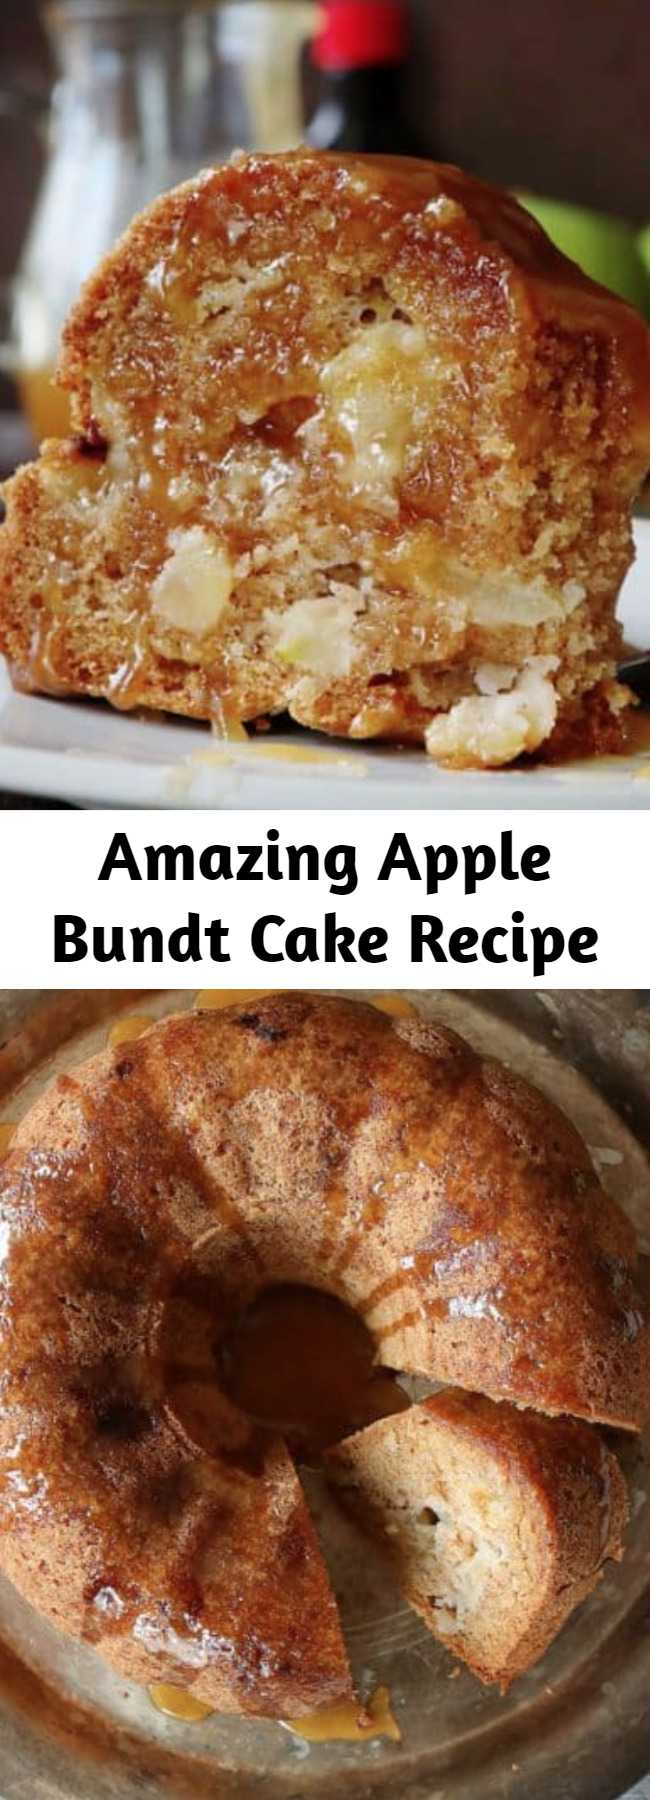 Seriously amazing Apple Bundt Cake that you will want to make again and again! This recipe has been handed down through the generations and definitely stands the test of time. #applebundtcake #baking #fallbaking #recipes #applecake #apples